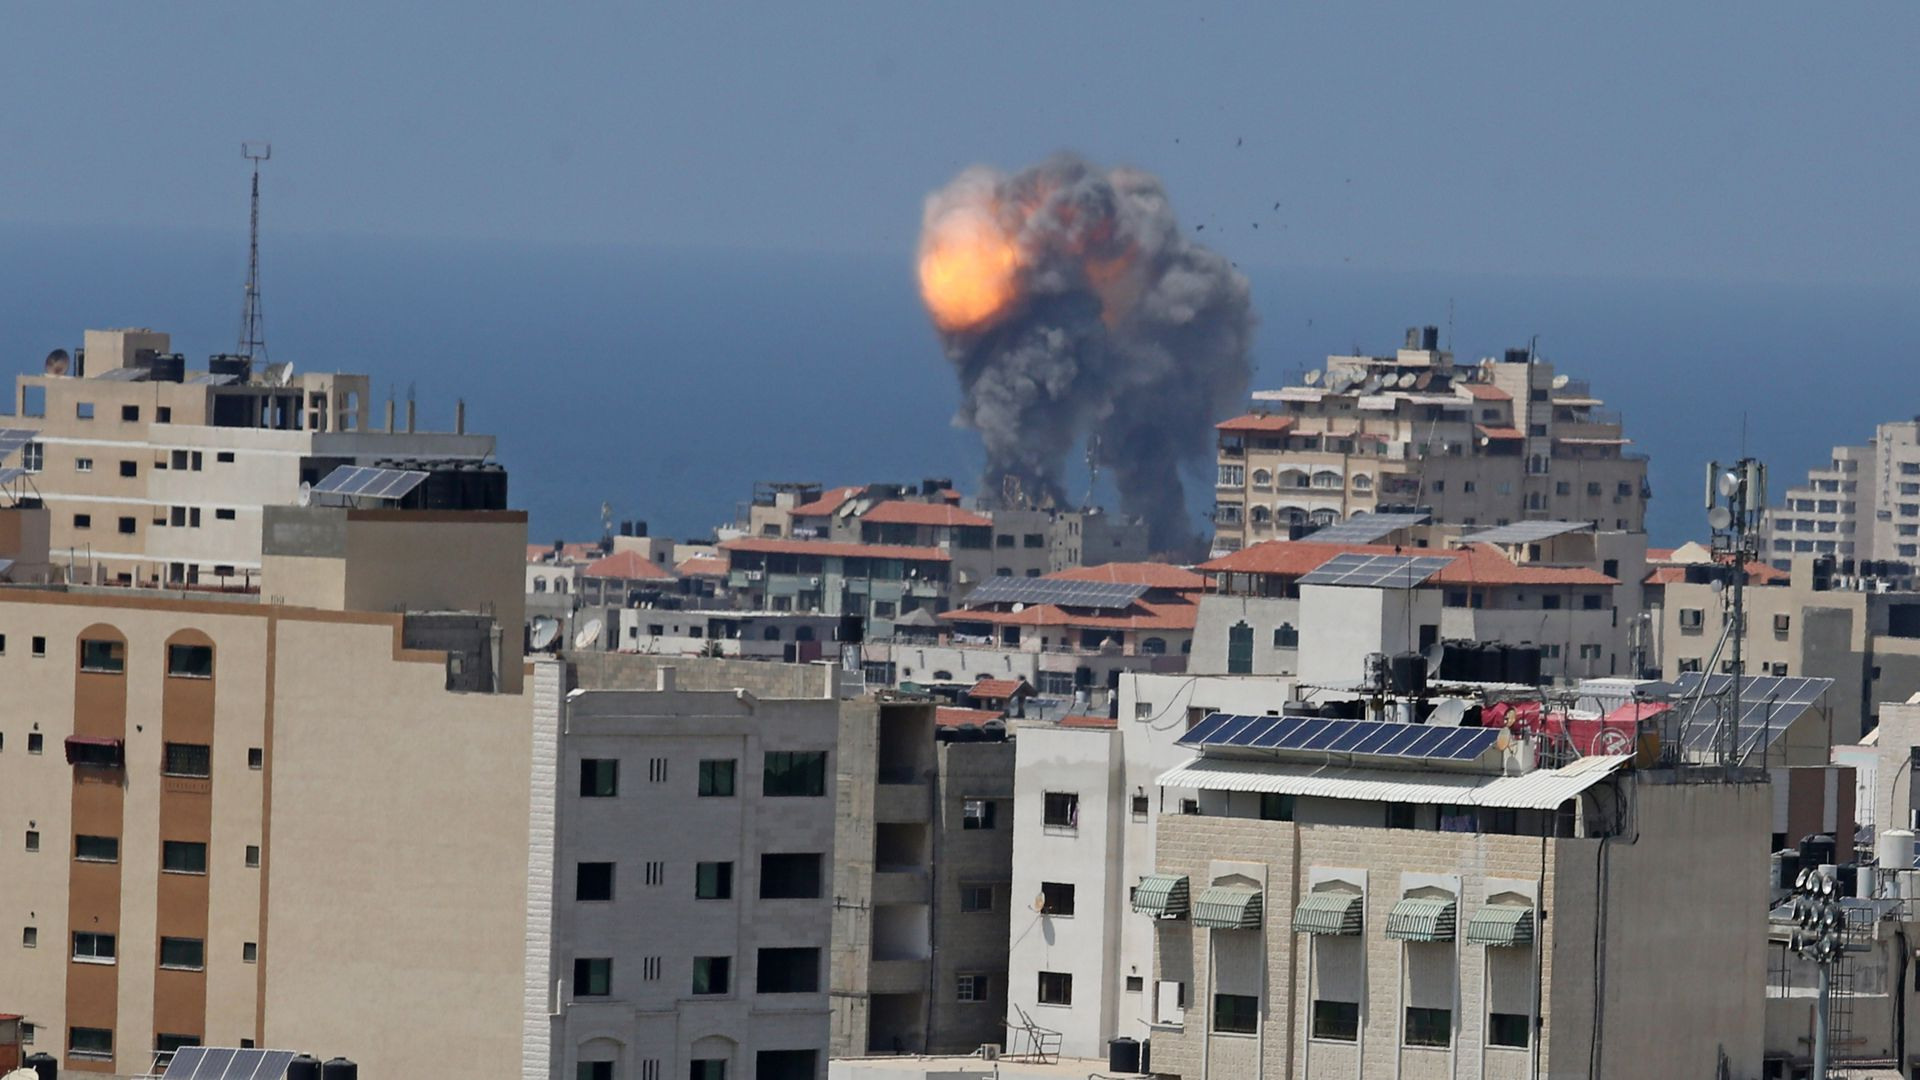 Smoke rises after the warplanes of Israel carried out an airstrike over residential areas in Gaza City, Gaza